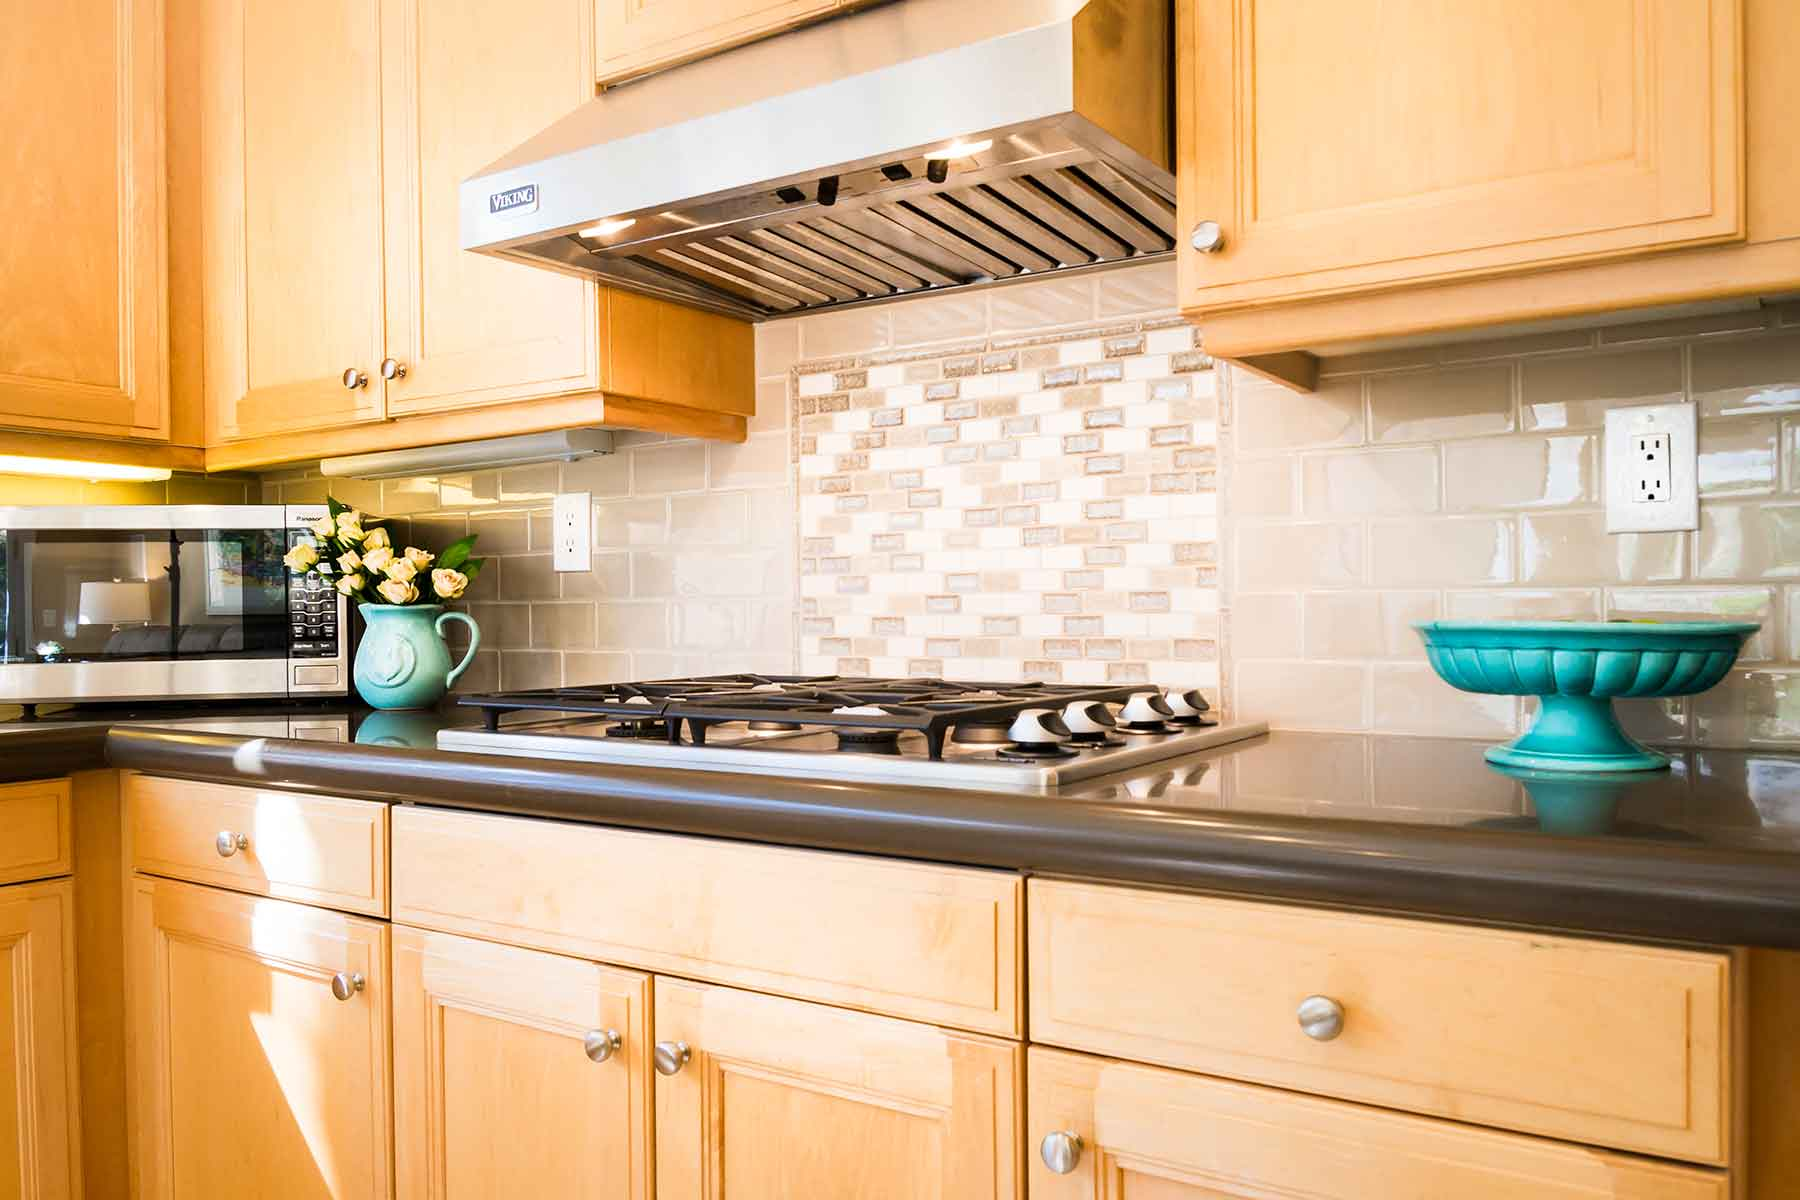 Sonoma Backsplash with Pental counters